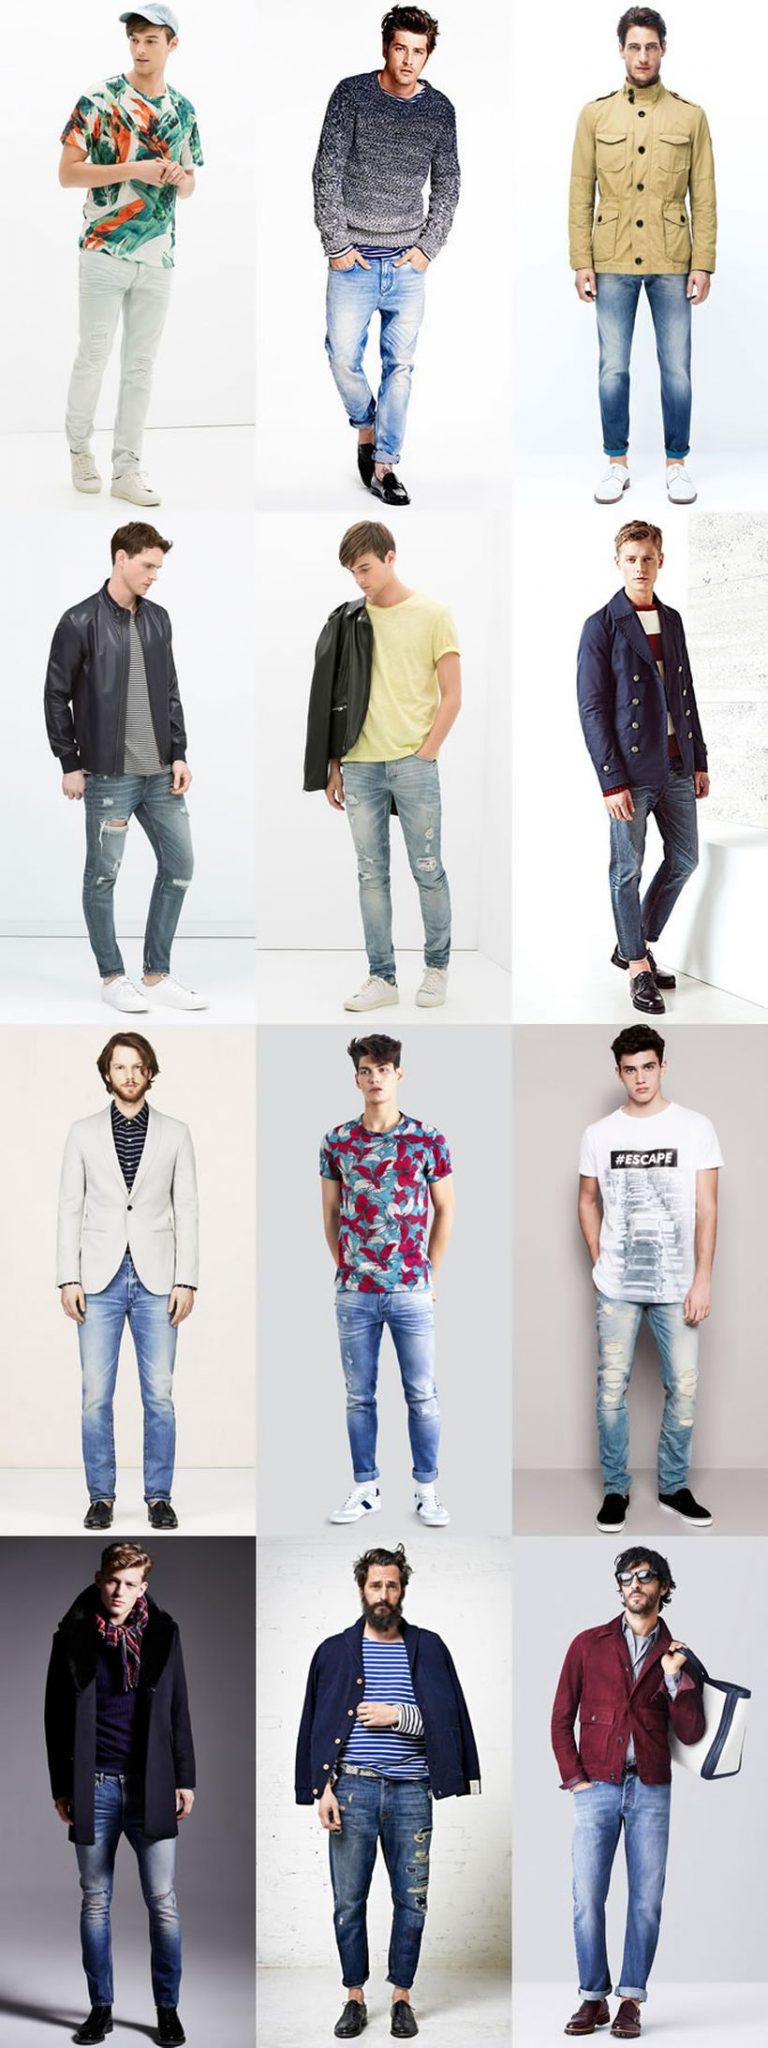 Stylish men's jeans outfits ideas in 2017 9